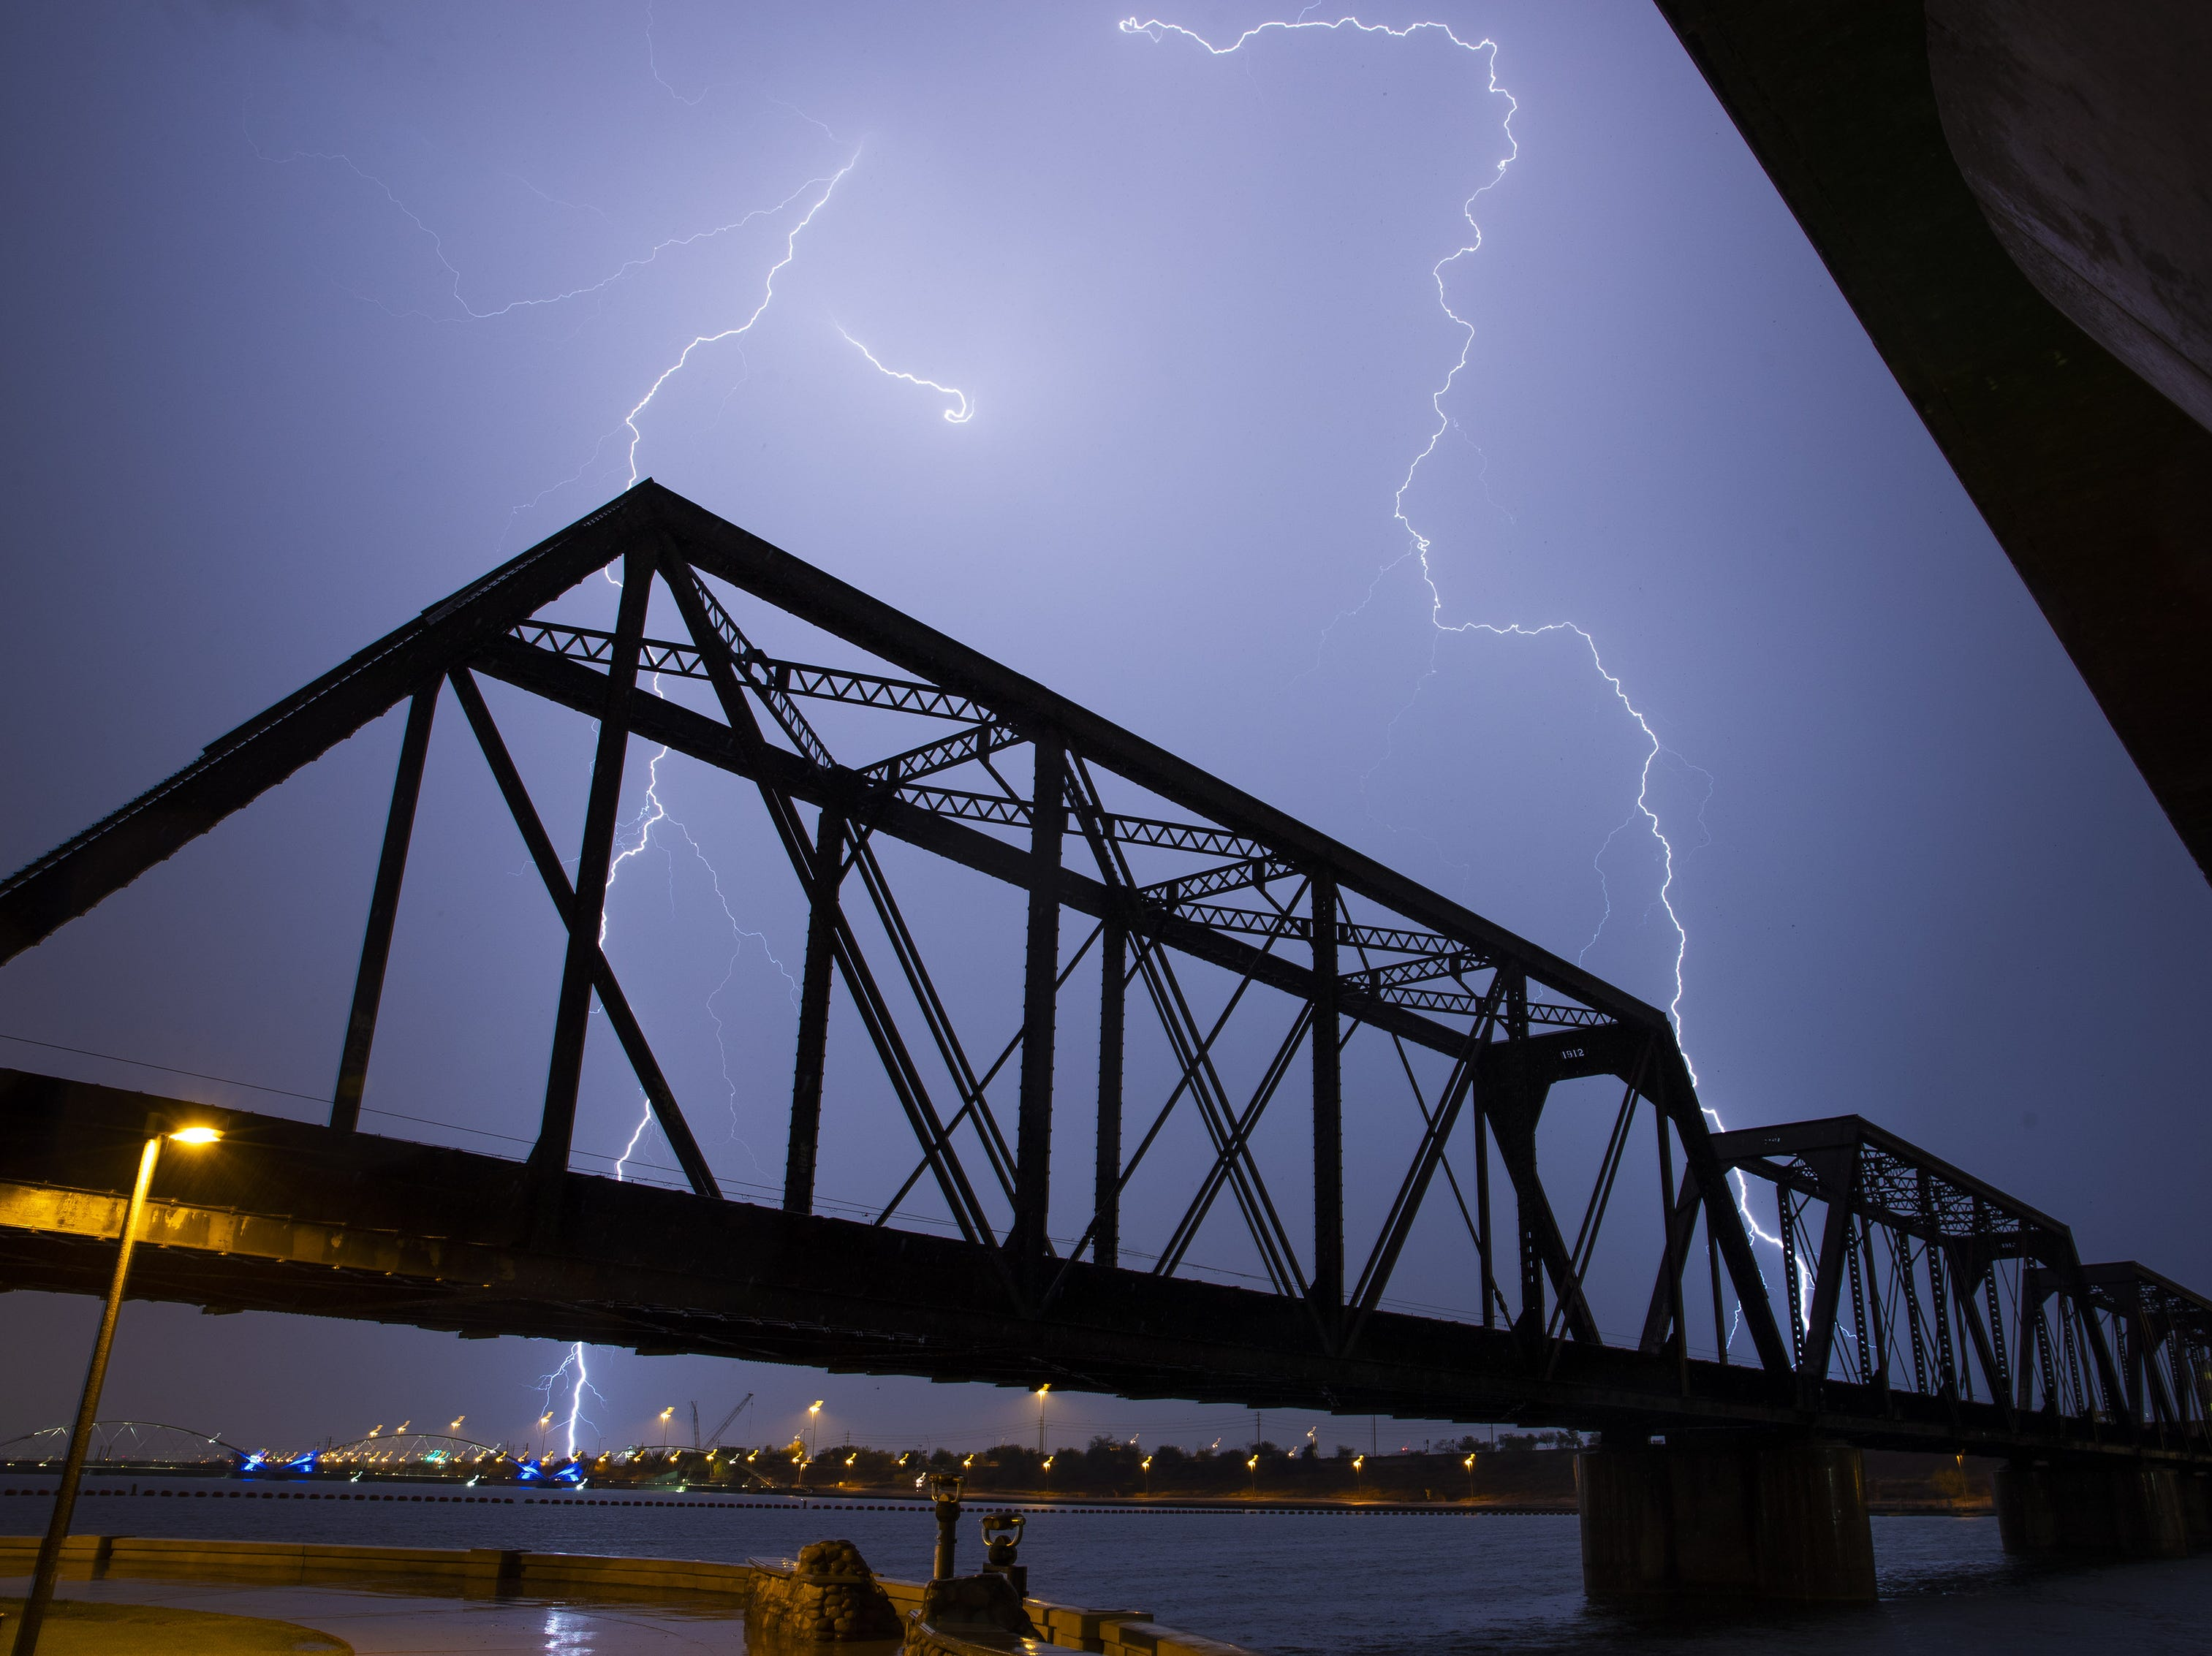 Lightning strikes over Tempe Town Lake during a monsoon storm August 10, 2018.